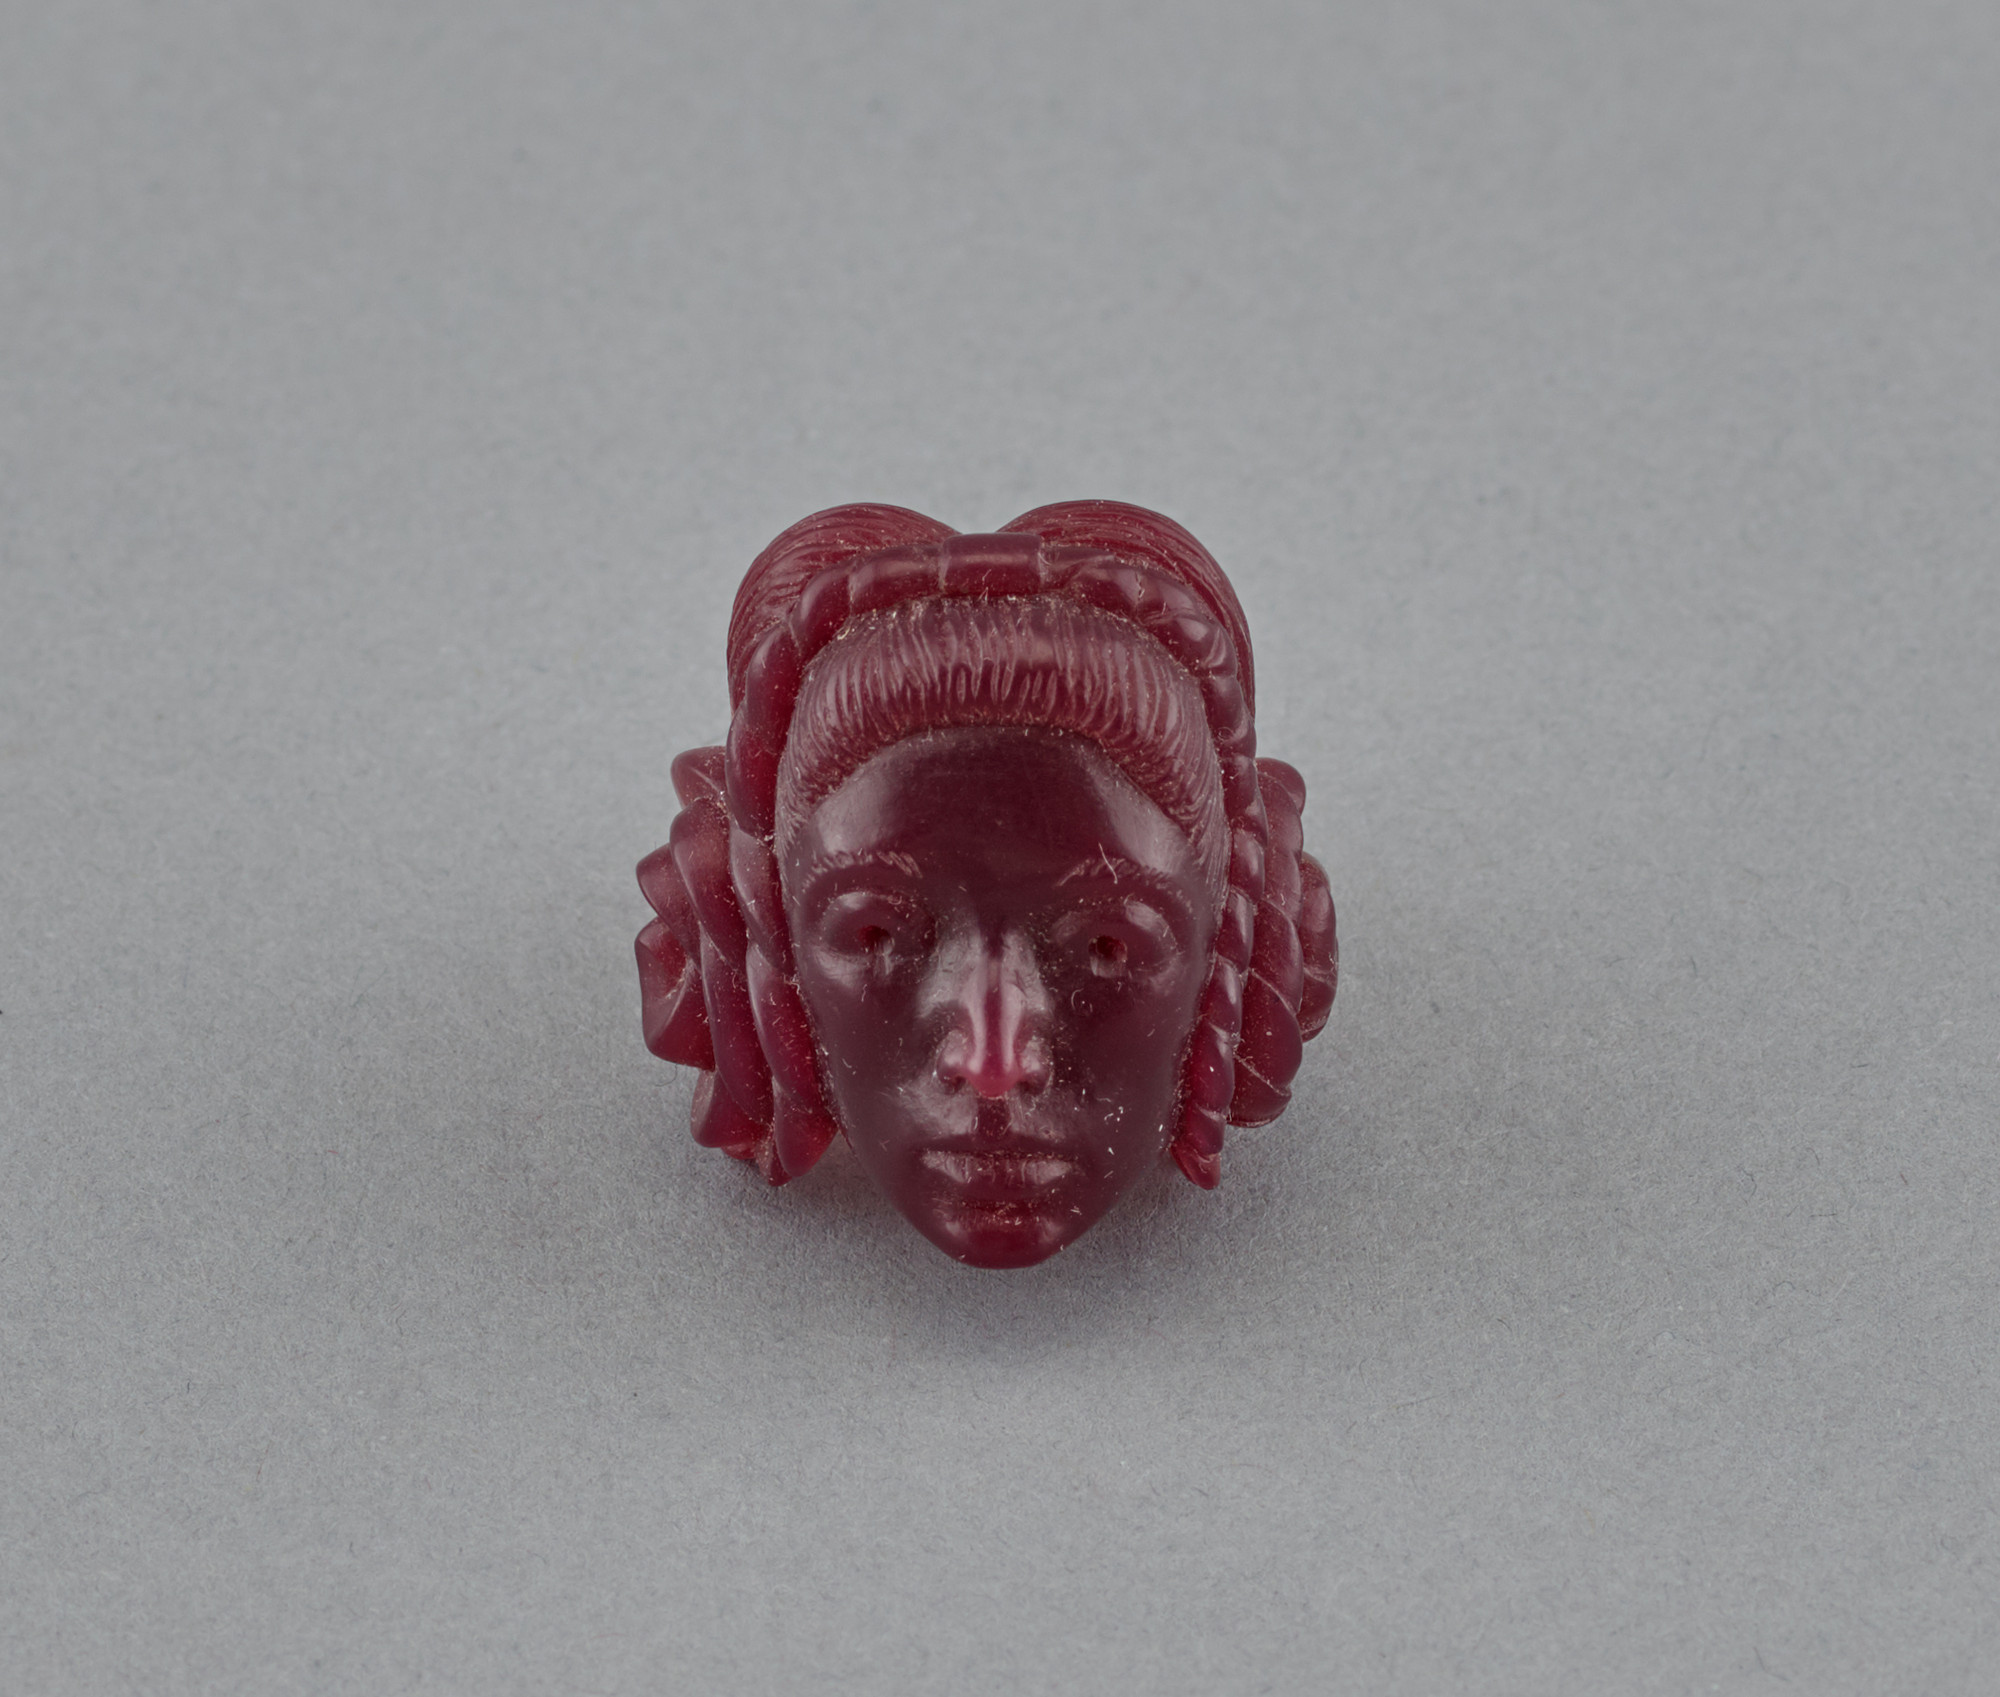 Marisol (Marisol Escobar). Original wax prototype for Self-portrait ring. 1967